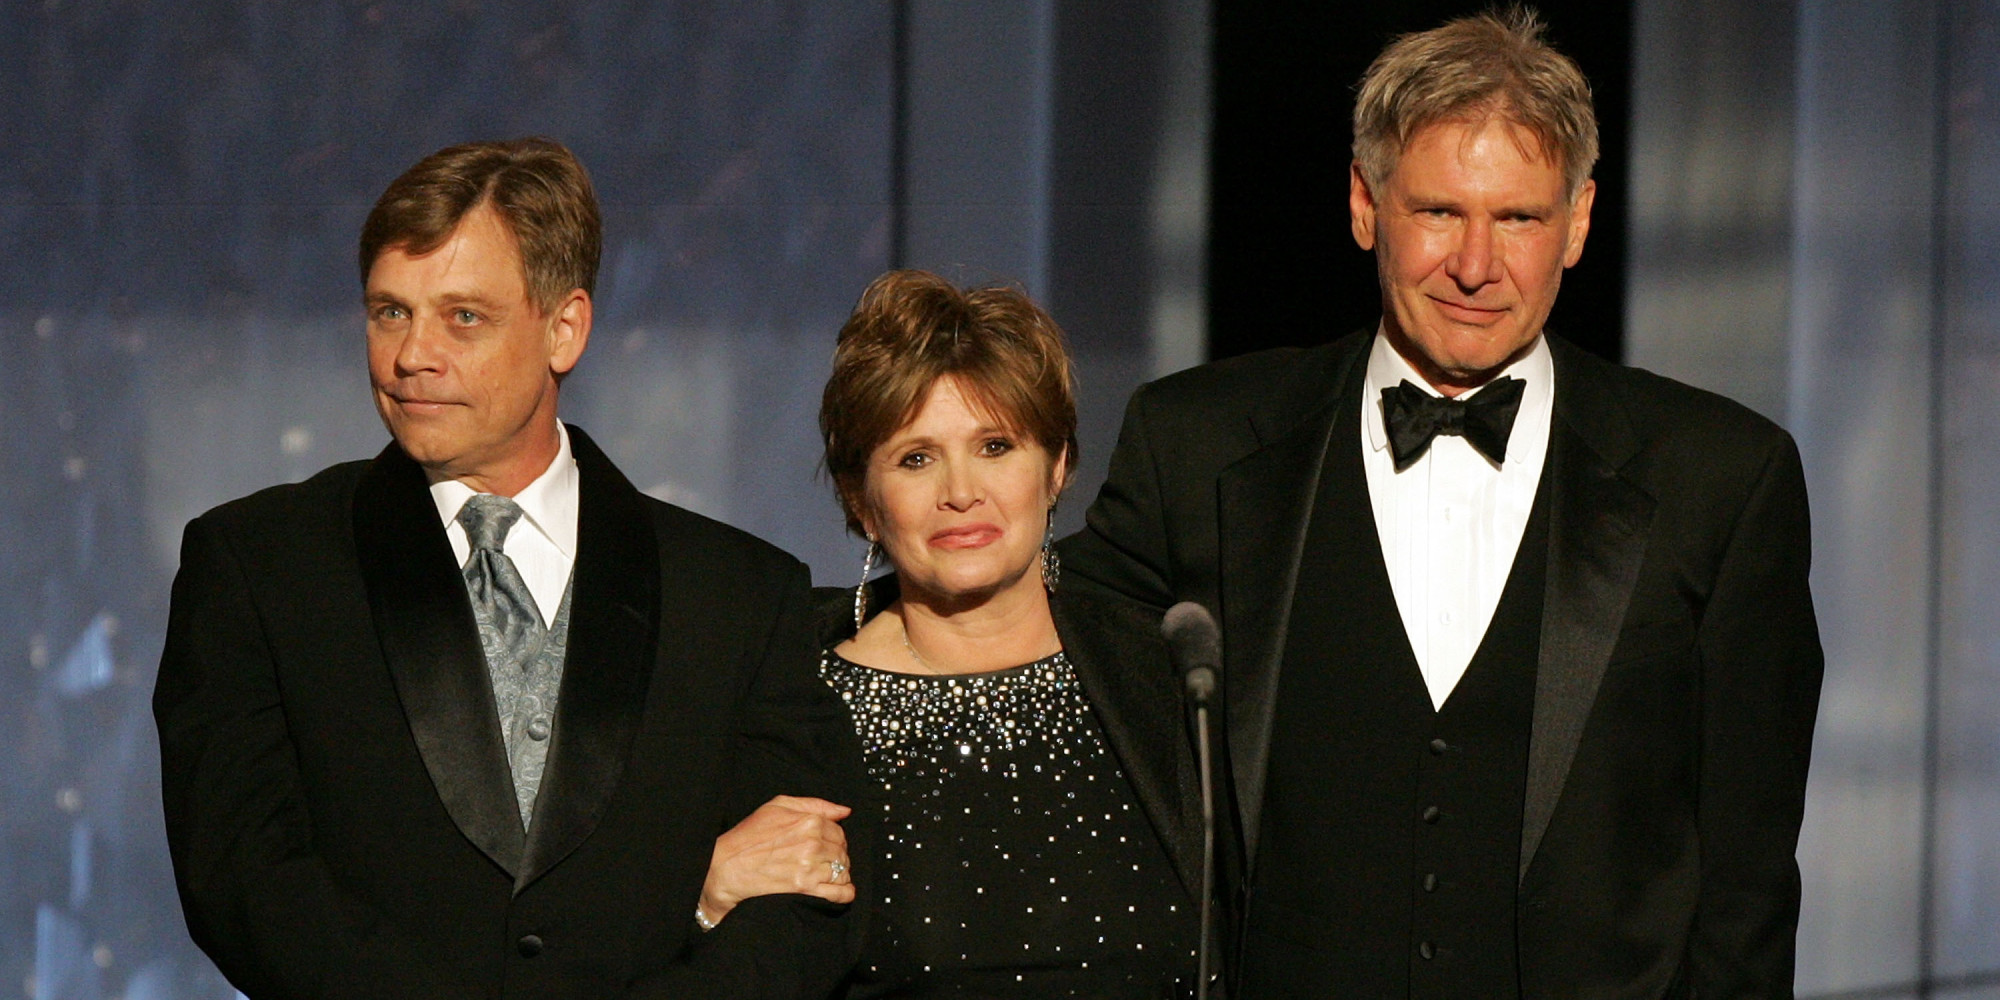 HOLLYWOOD - JUNE 09: (L-R) Actors Mark Hamill, Carrie Fisher and Harrison Ford speak onstage during the 33rd AFI Life Achievement Award tribute to George Lucas at the Kodak Theatre on June 9, 2005 in Hollywood, California. (Photo by Kevin Winter/Getty Images)